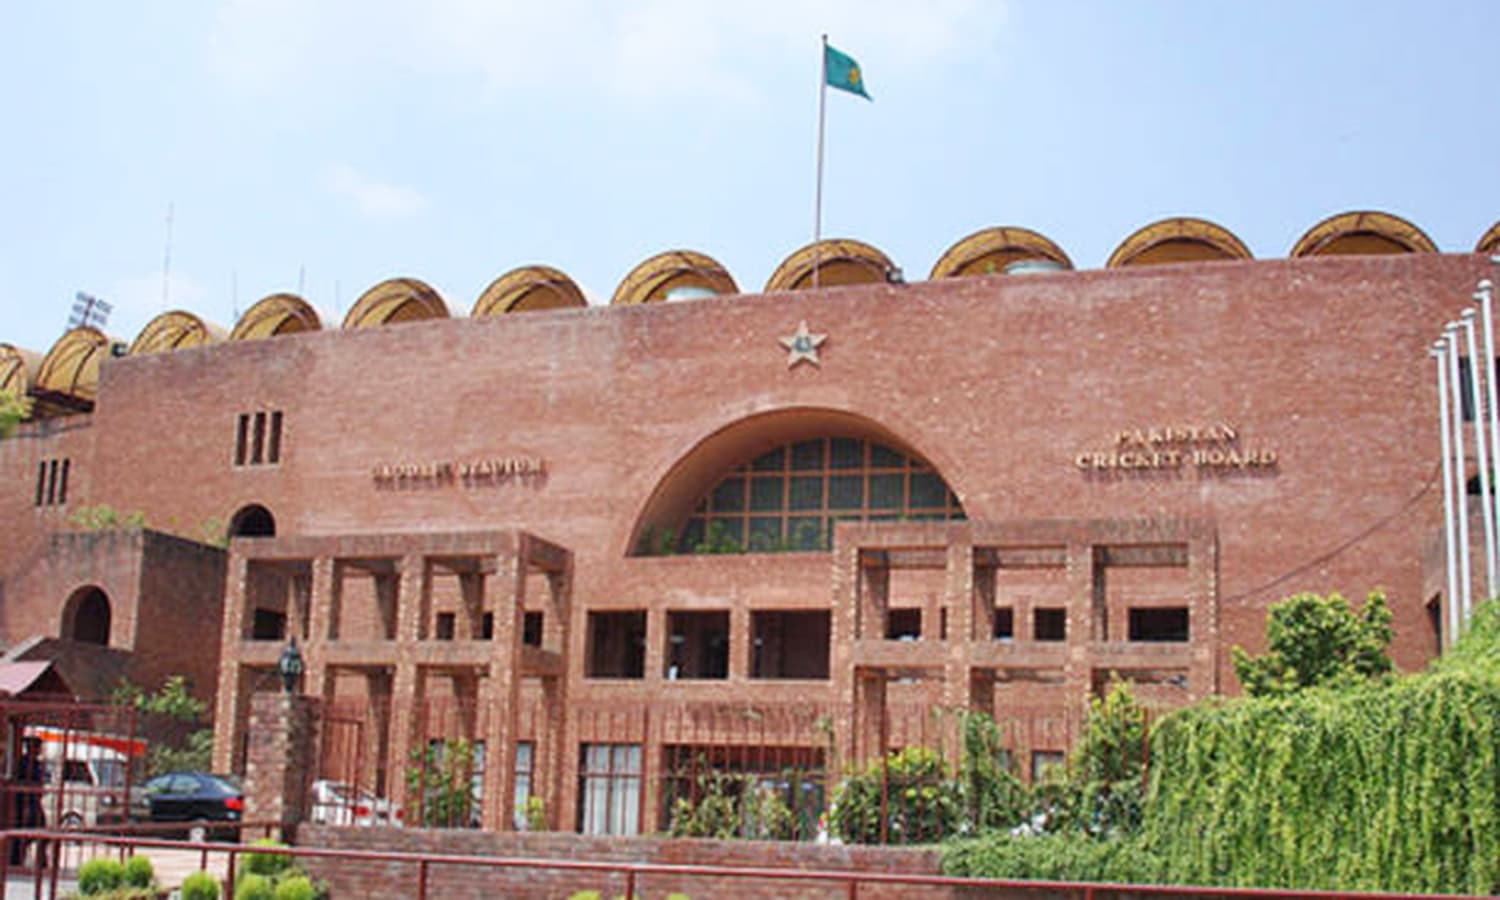 The Pakistan Cricket Board (PCB) offices at Gaddafi Stadium. (Pic: PCB)